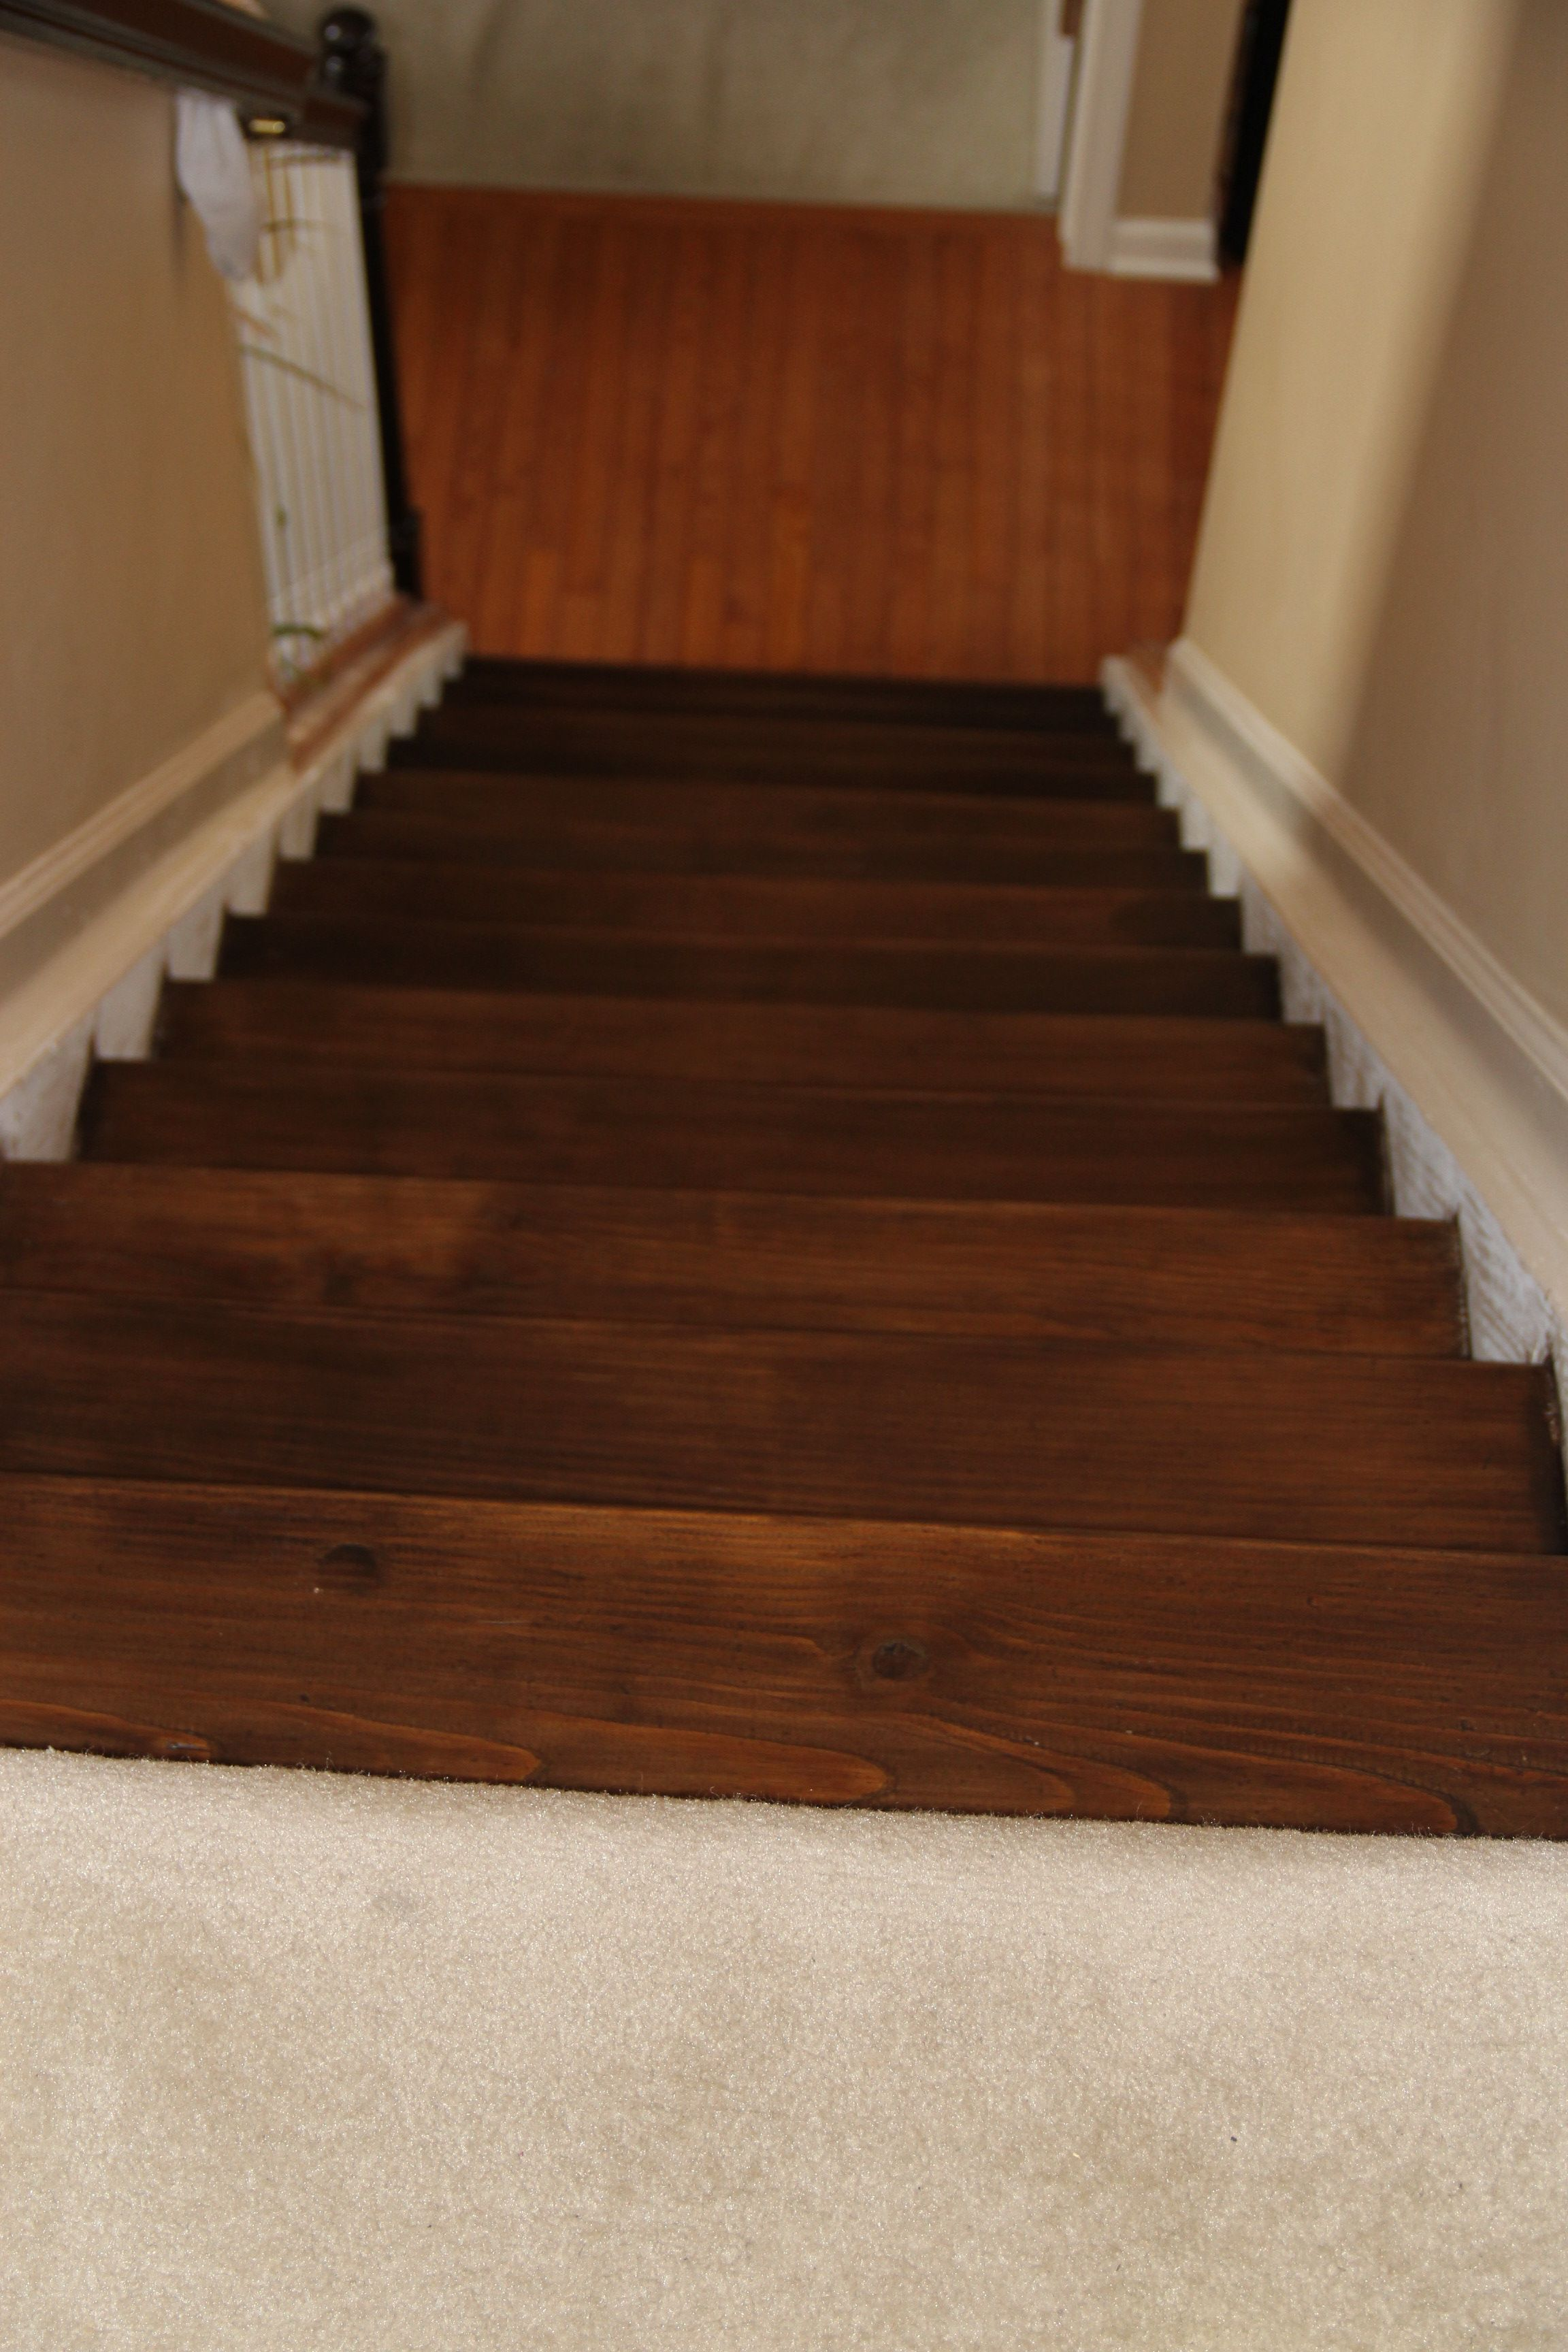 Staining Pine Stair Treads Tempting Thyme Pine Stair Treads   Wood Steps Home Depot   Flooring   Stair Railing   Carpeted Stairs   Unfinished Pine Stair   Oak Stair Nosing